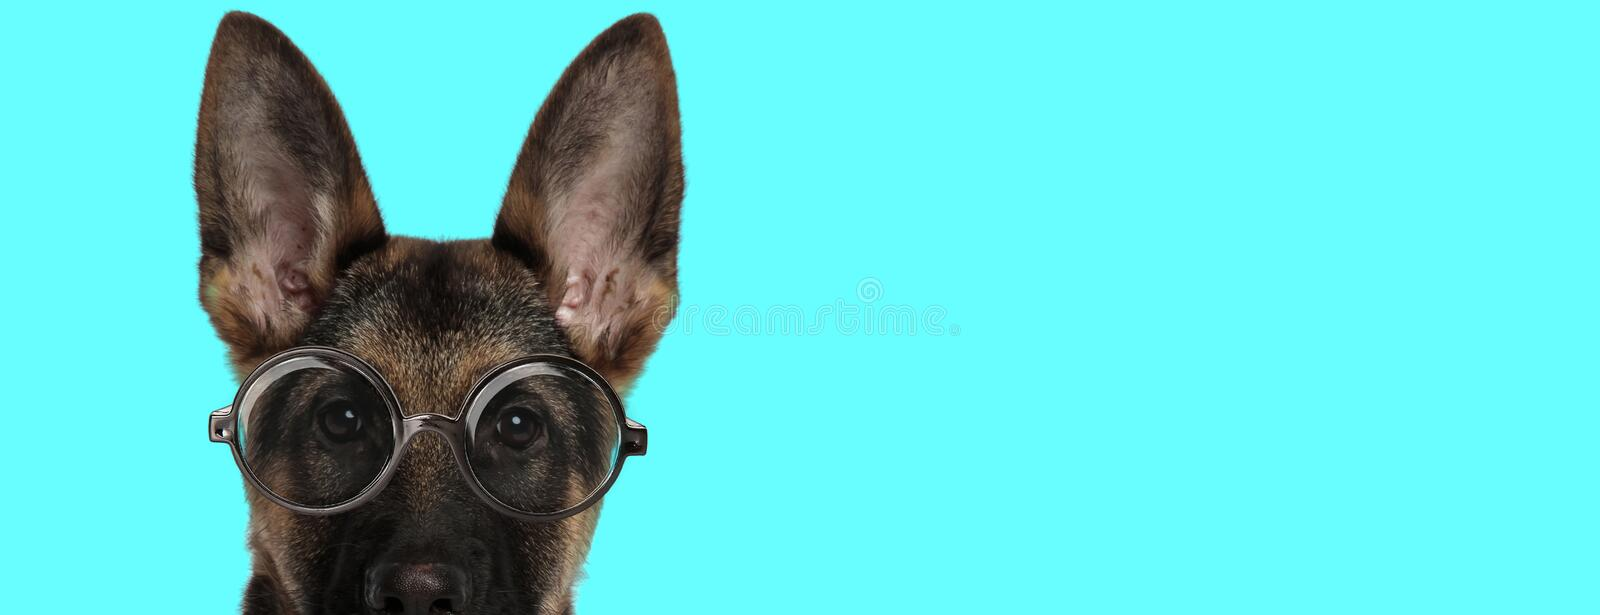 Adorable nerdy German Shepherd dog with face half exposed royalty free stock images